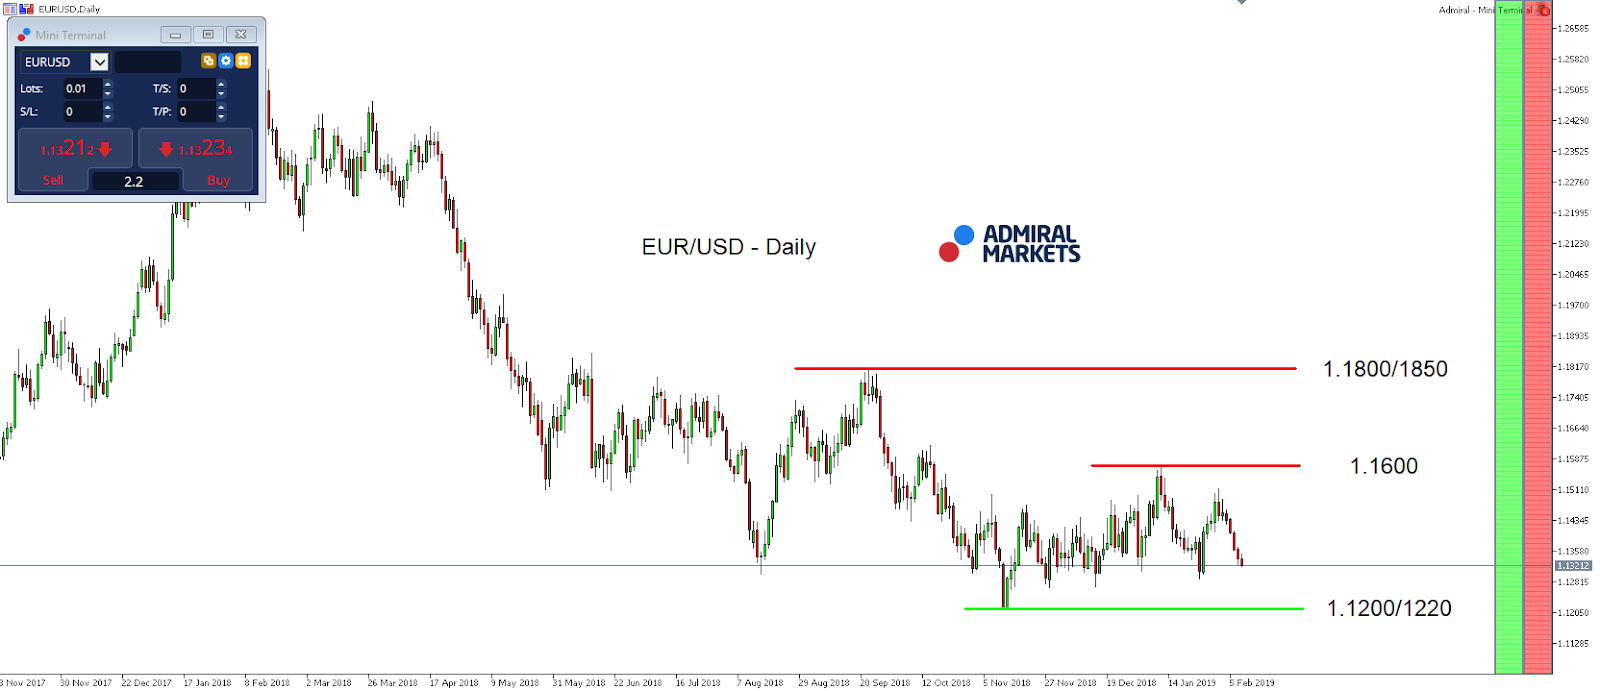 EUR/USD Daily index chart